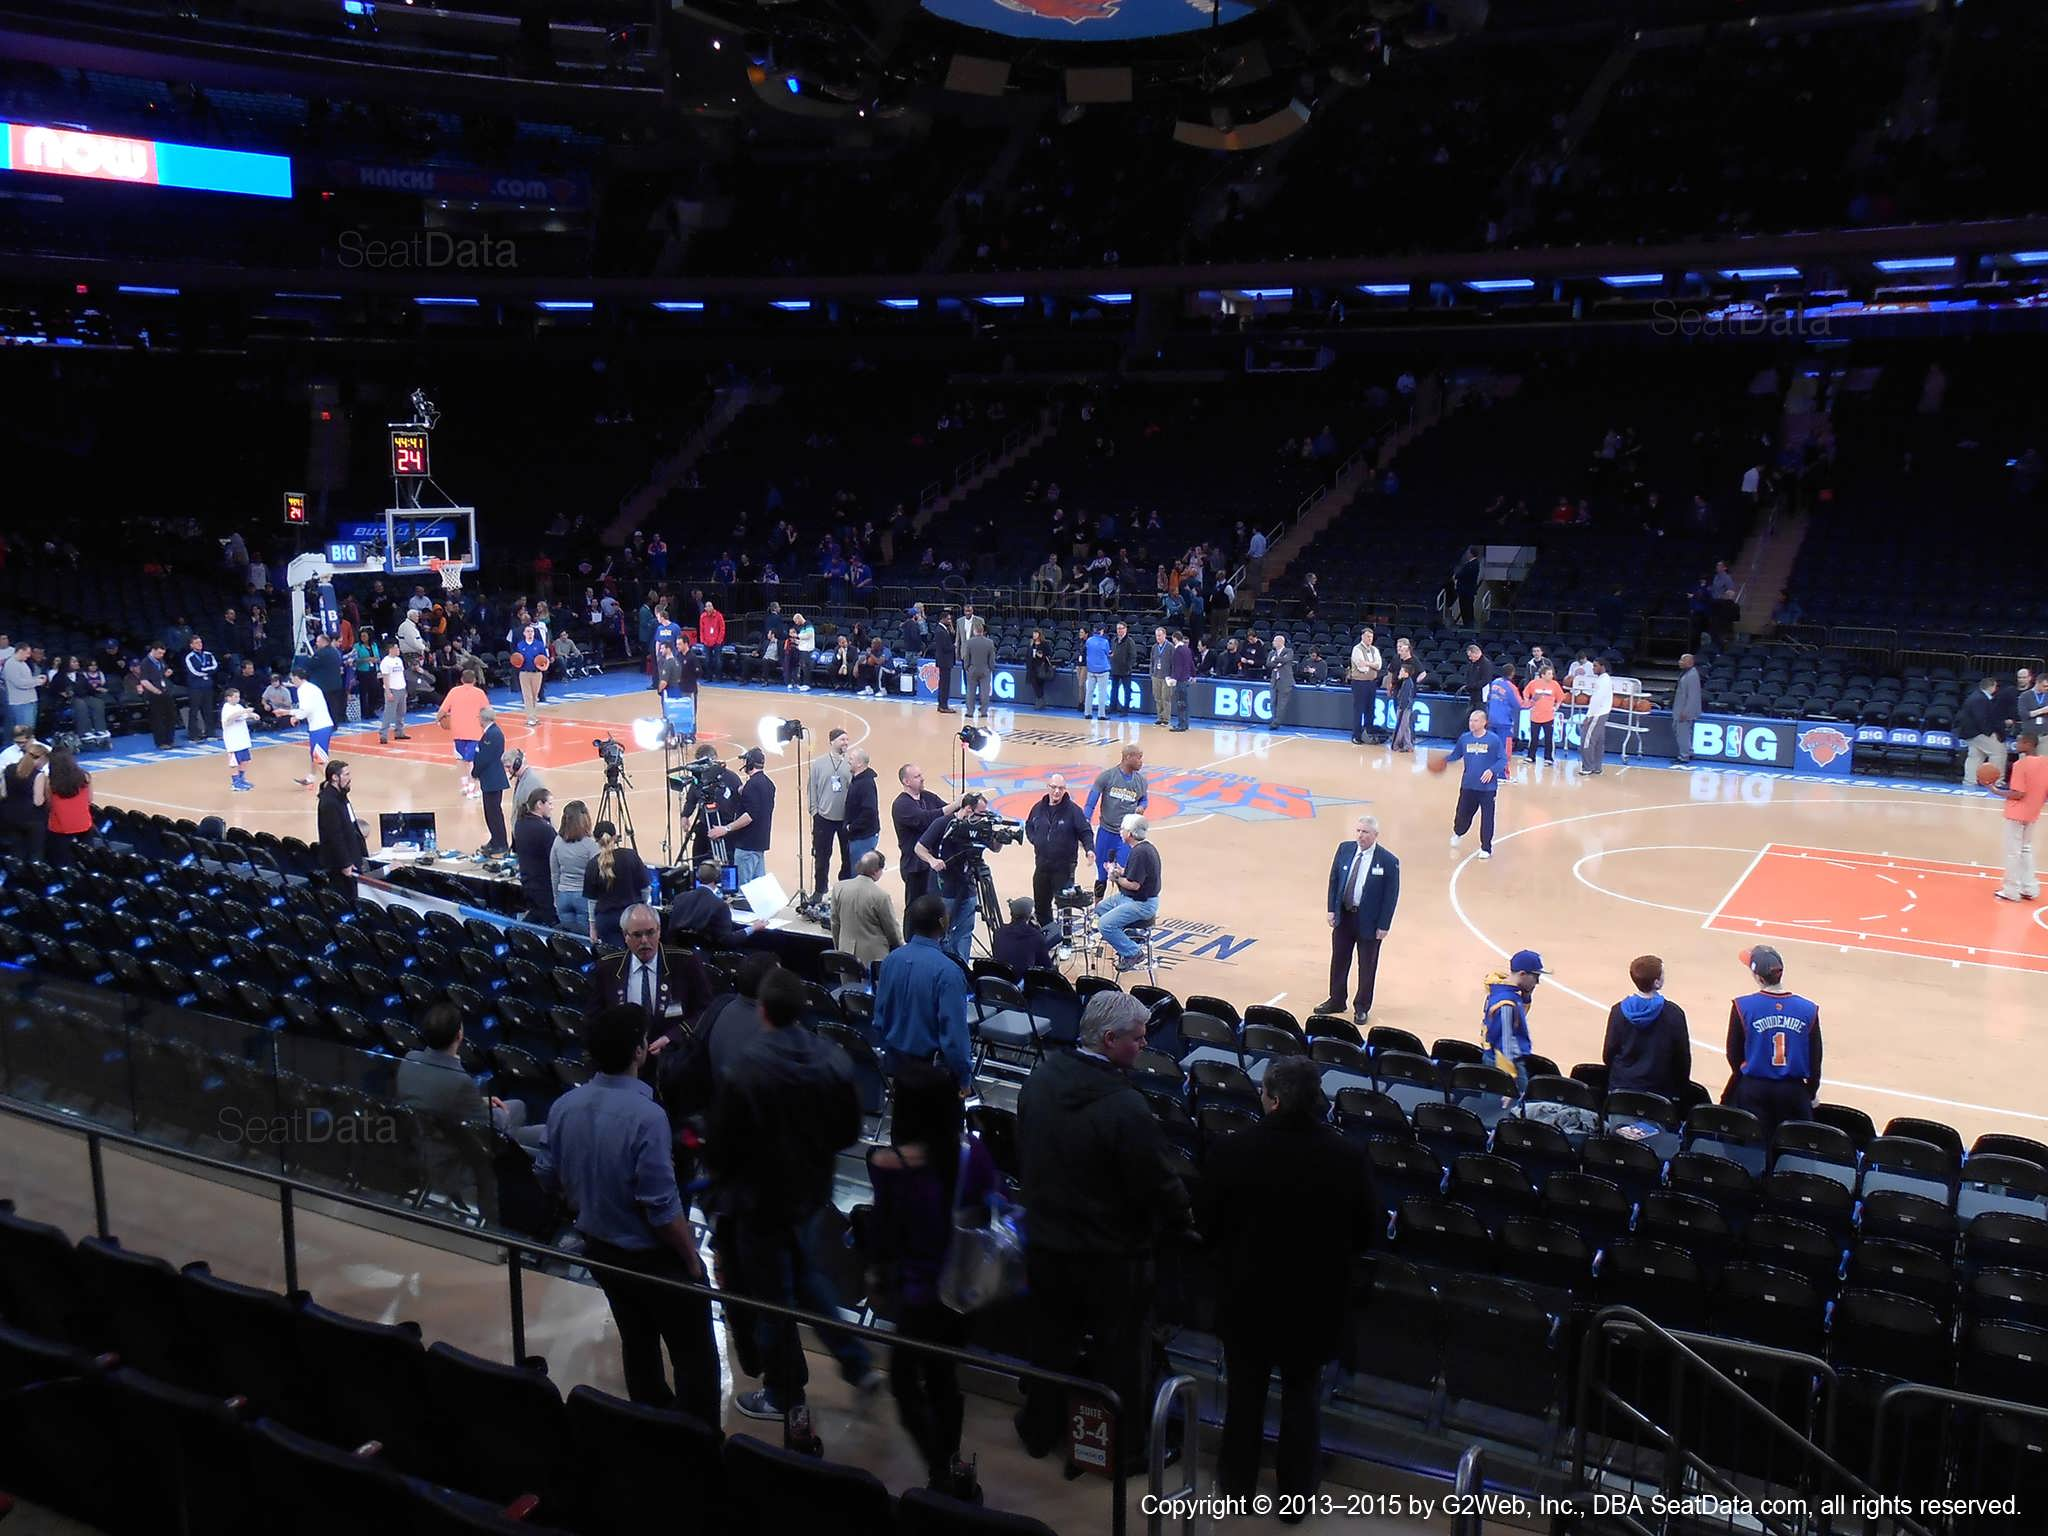 Seat view from section 12 at Madison Square Garden, home of the New York Knicks.